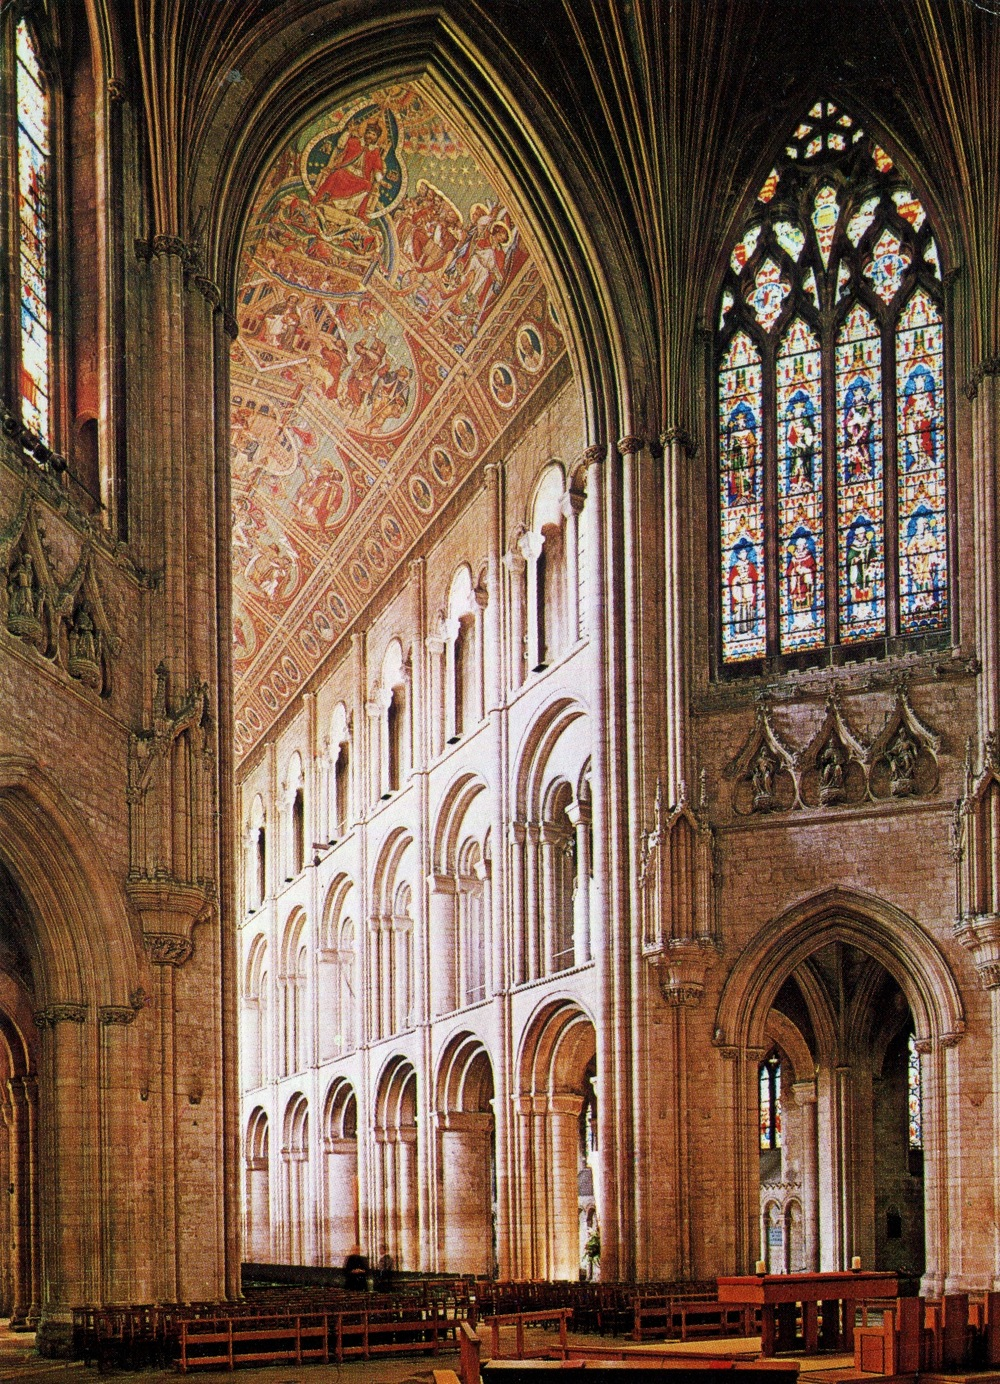 The Nave of Ely Cathedral